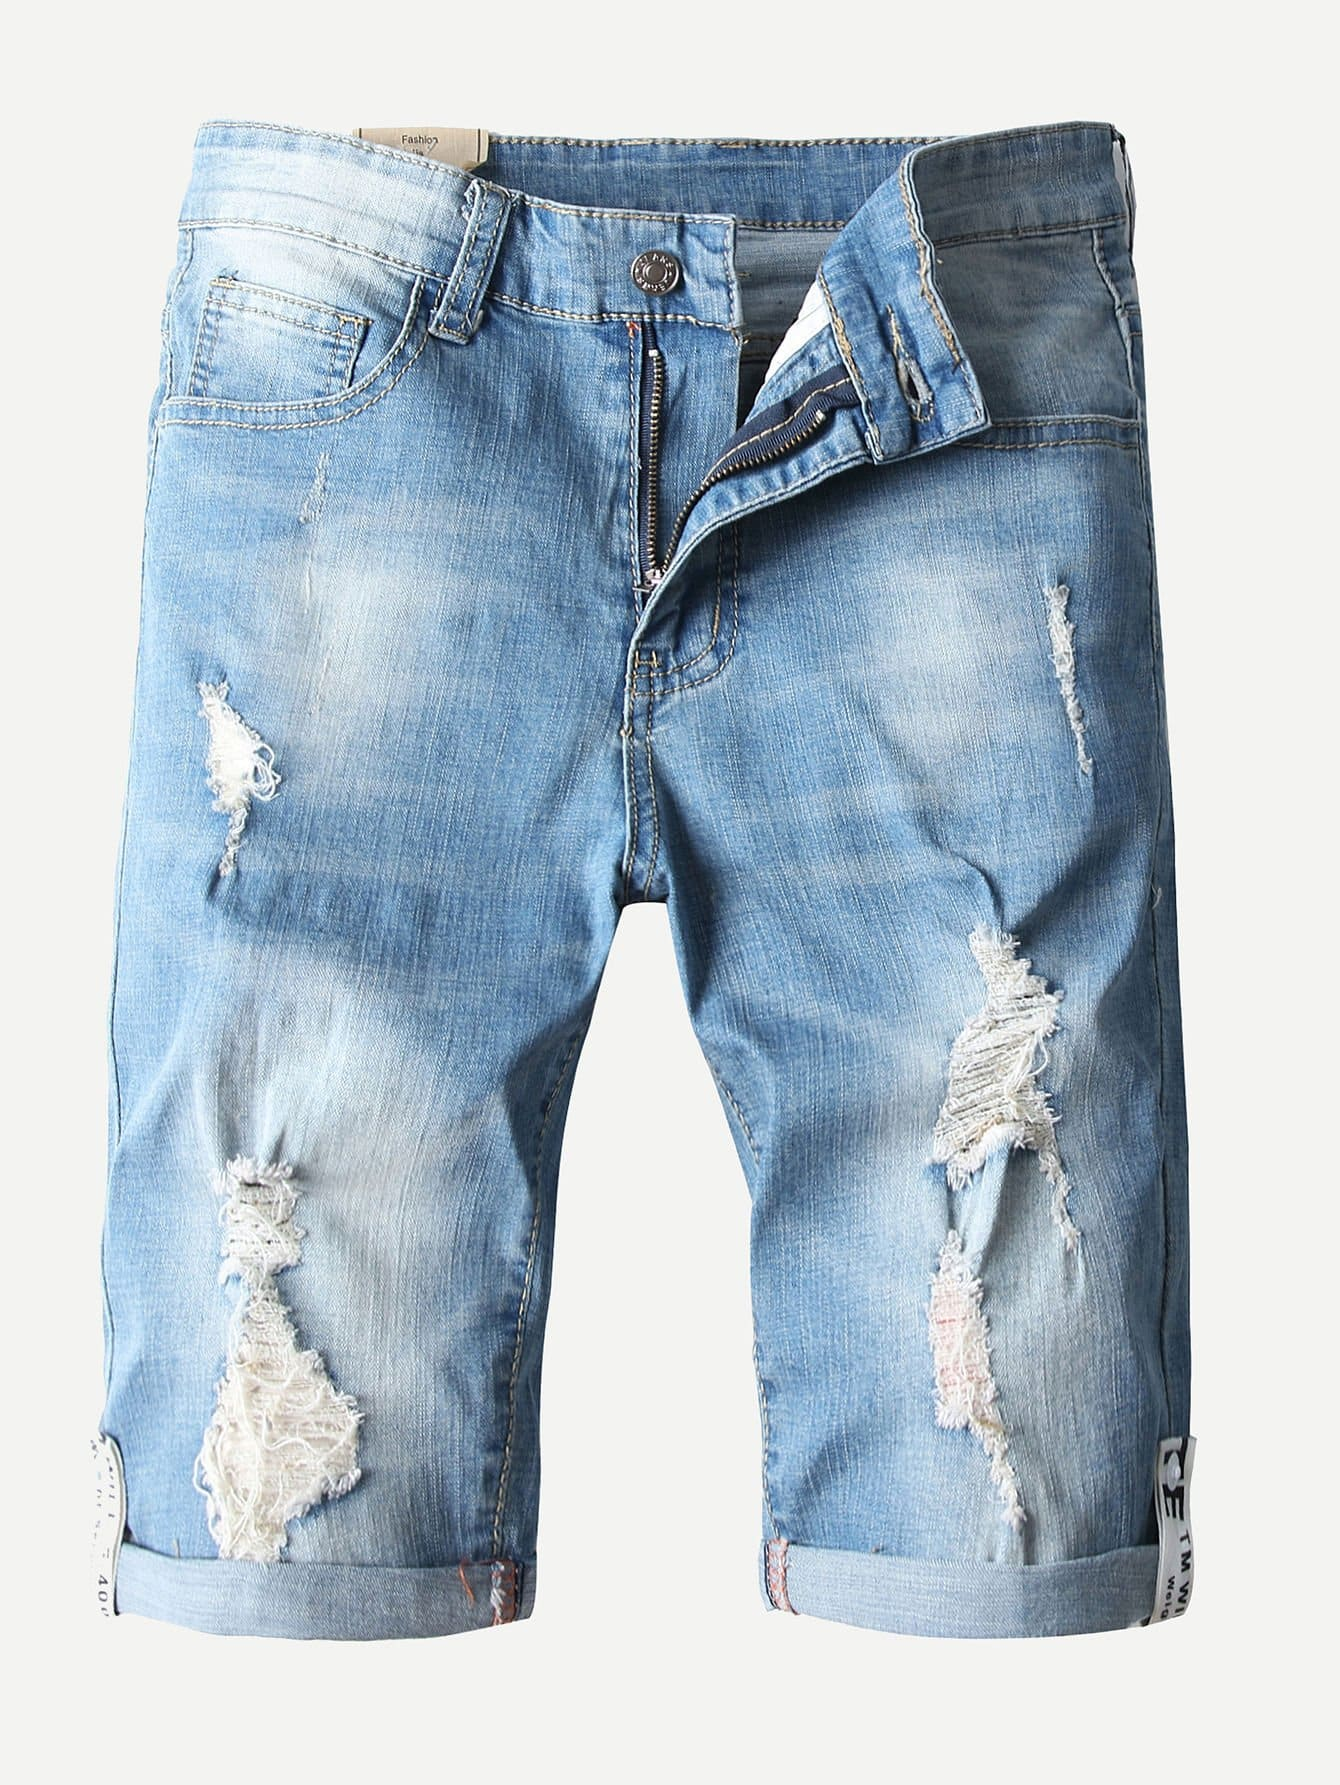 Men Rolled Hem Destroyed Denim Shorts Men Rolled Hem Destroyed Denim Shorts